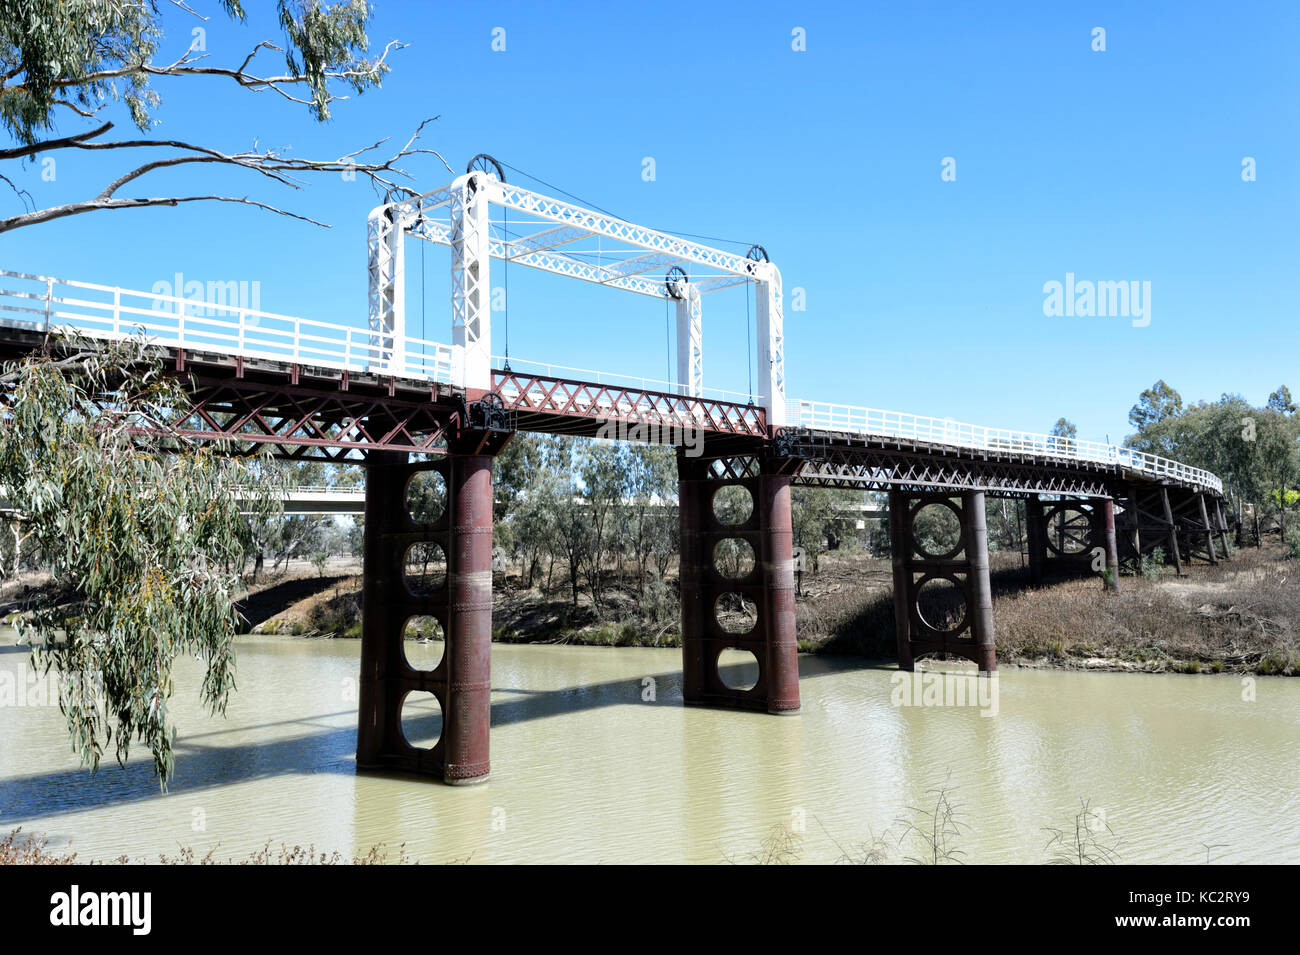 North Bourke Bridge is an old lift-span bridge, Bourke, New South Wales, NSW, Australia - Stock Image